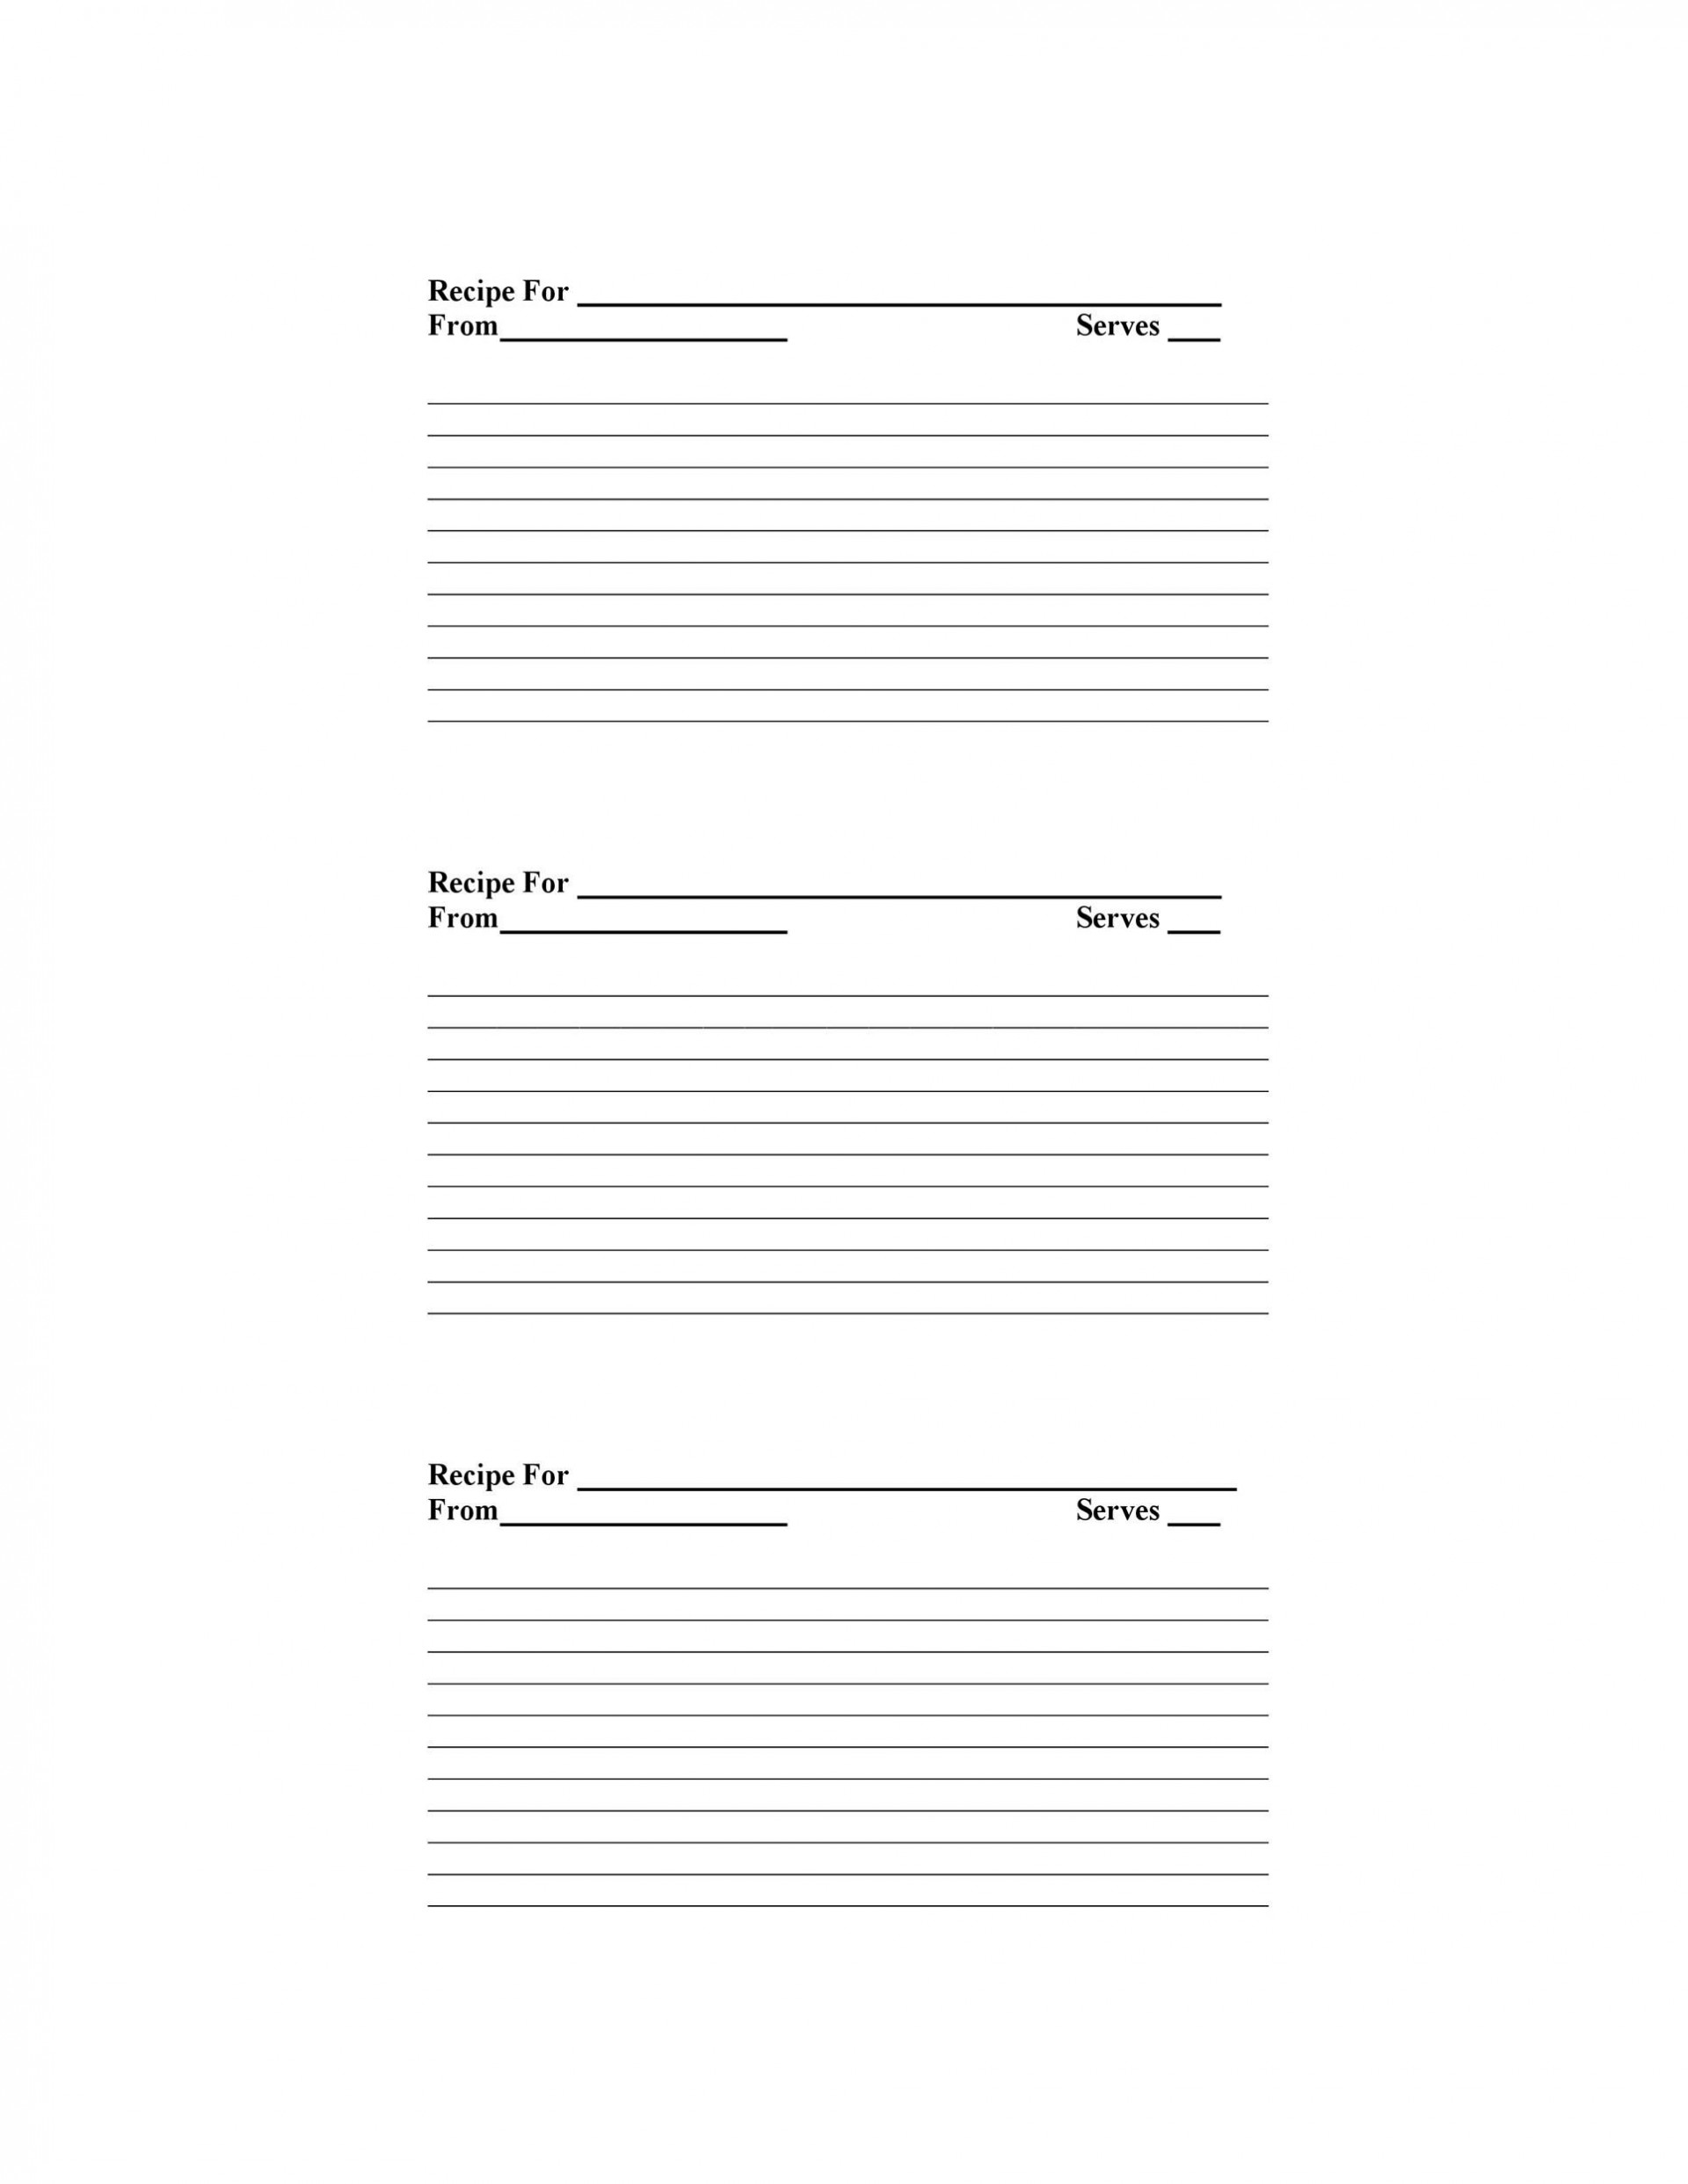 009 Unbelievable Free Recipe Template For Word High Def  Book Editable Card Microsoft 4x6 Page1920